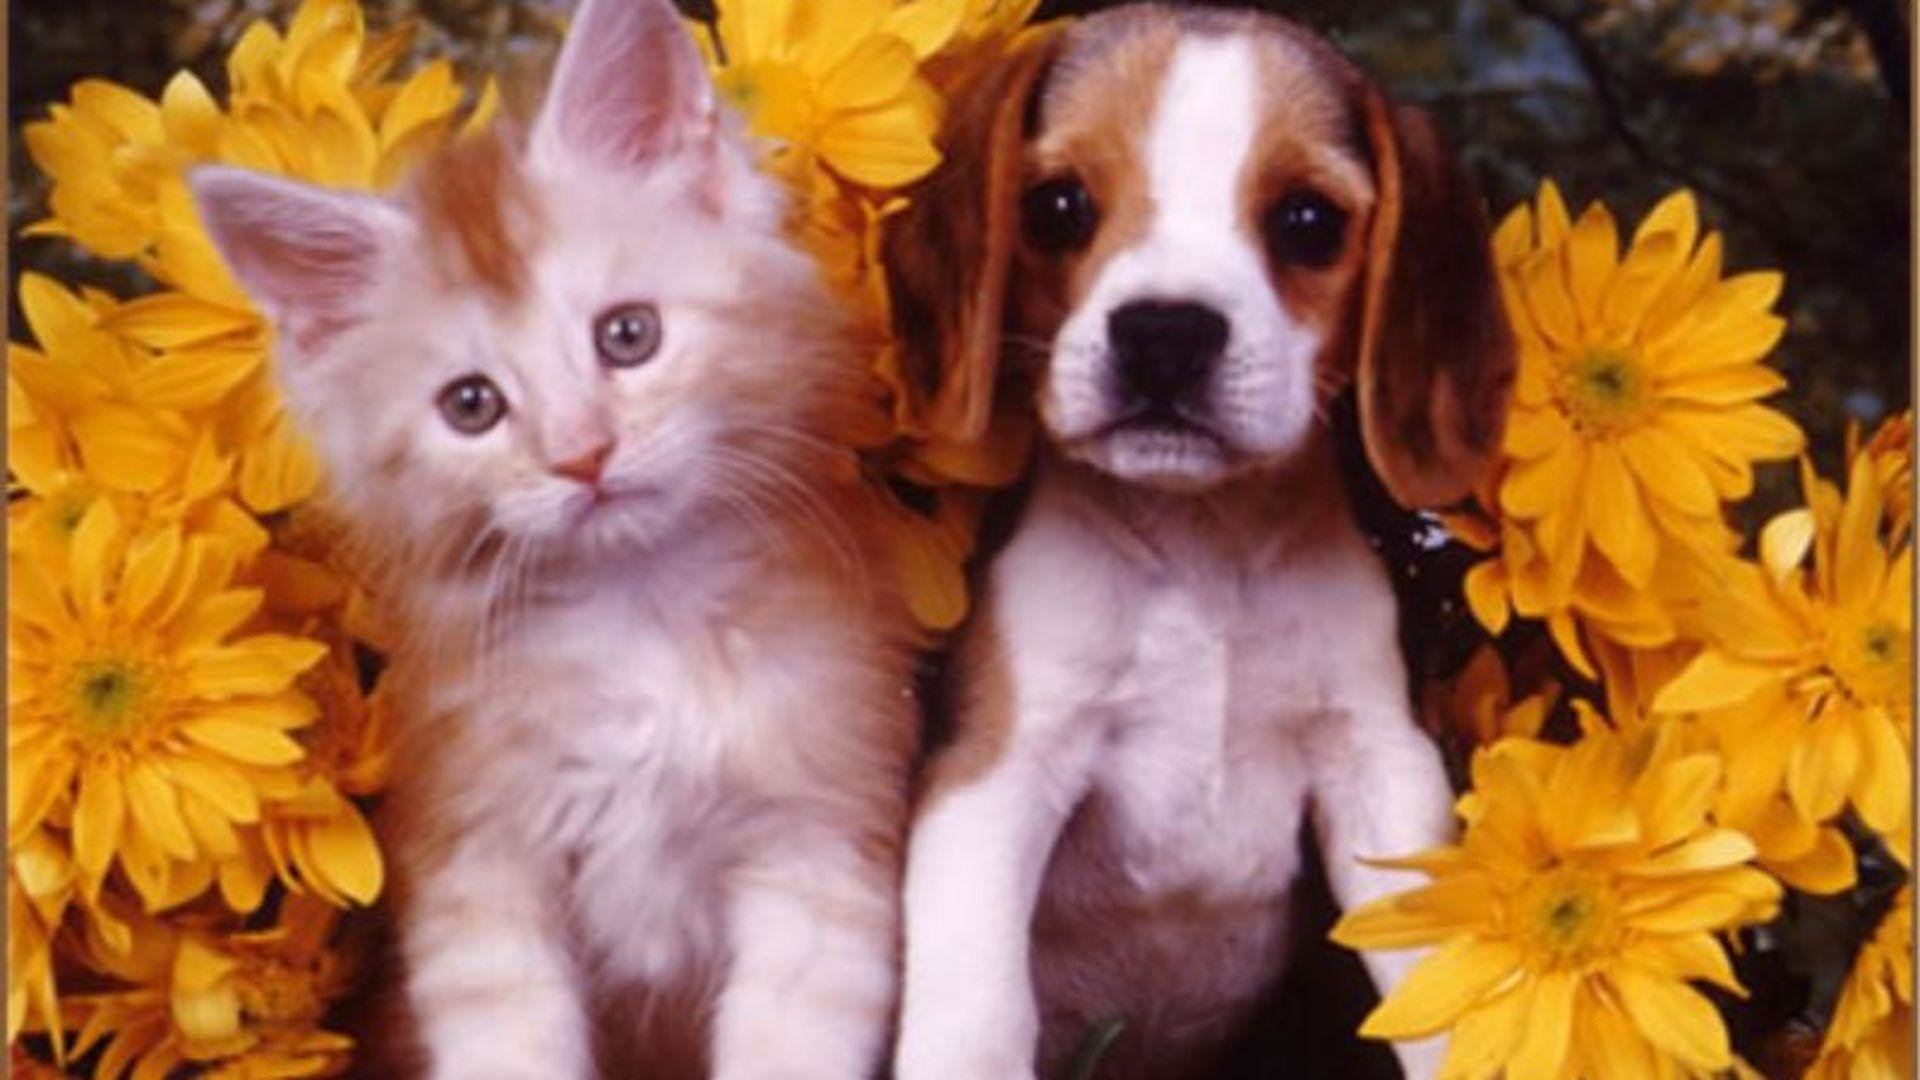 Cute Dogs And Puppies Wallpaper For Mobile Adorable Kitten And Puppy Hd Wallpaper Background Image